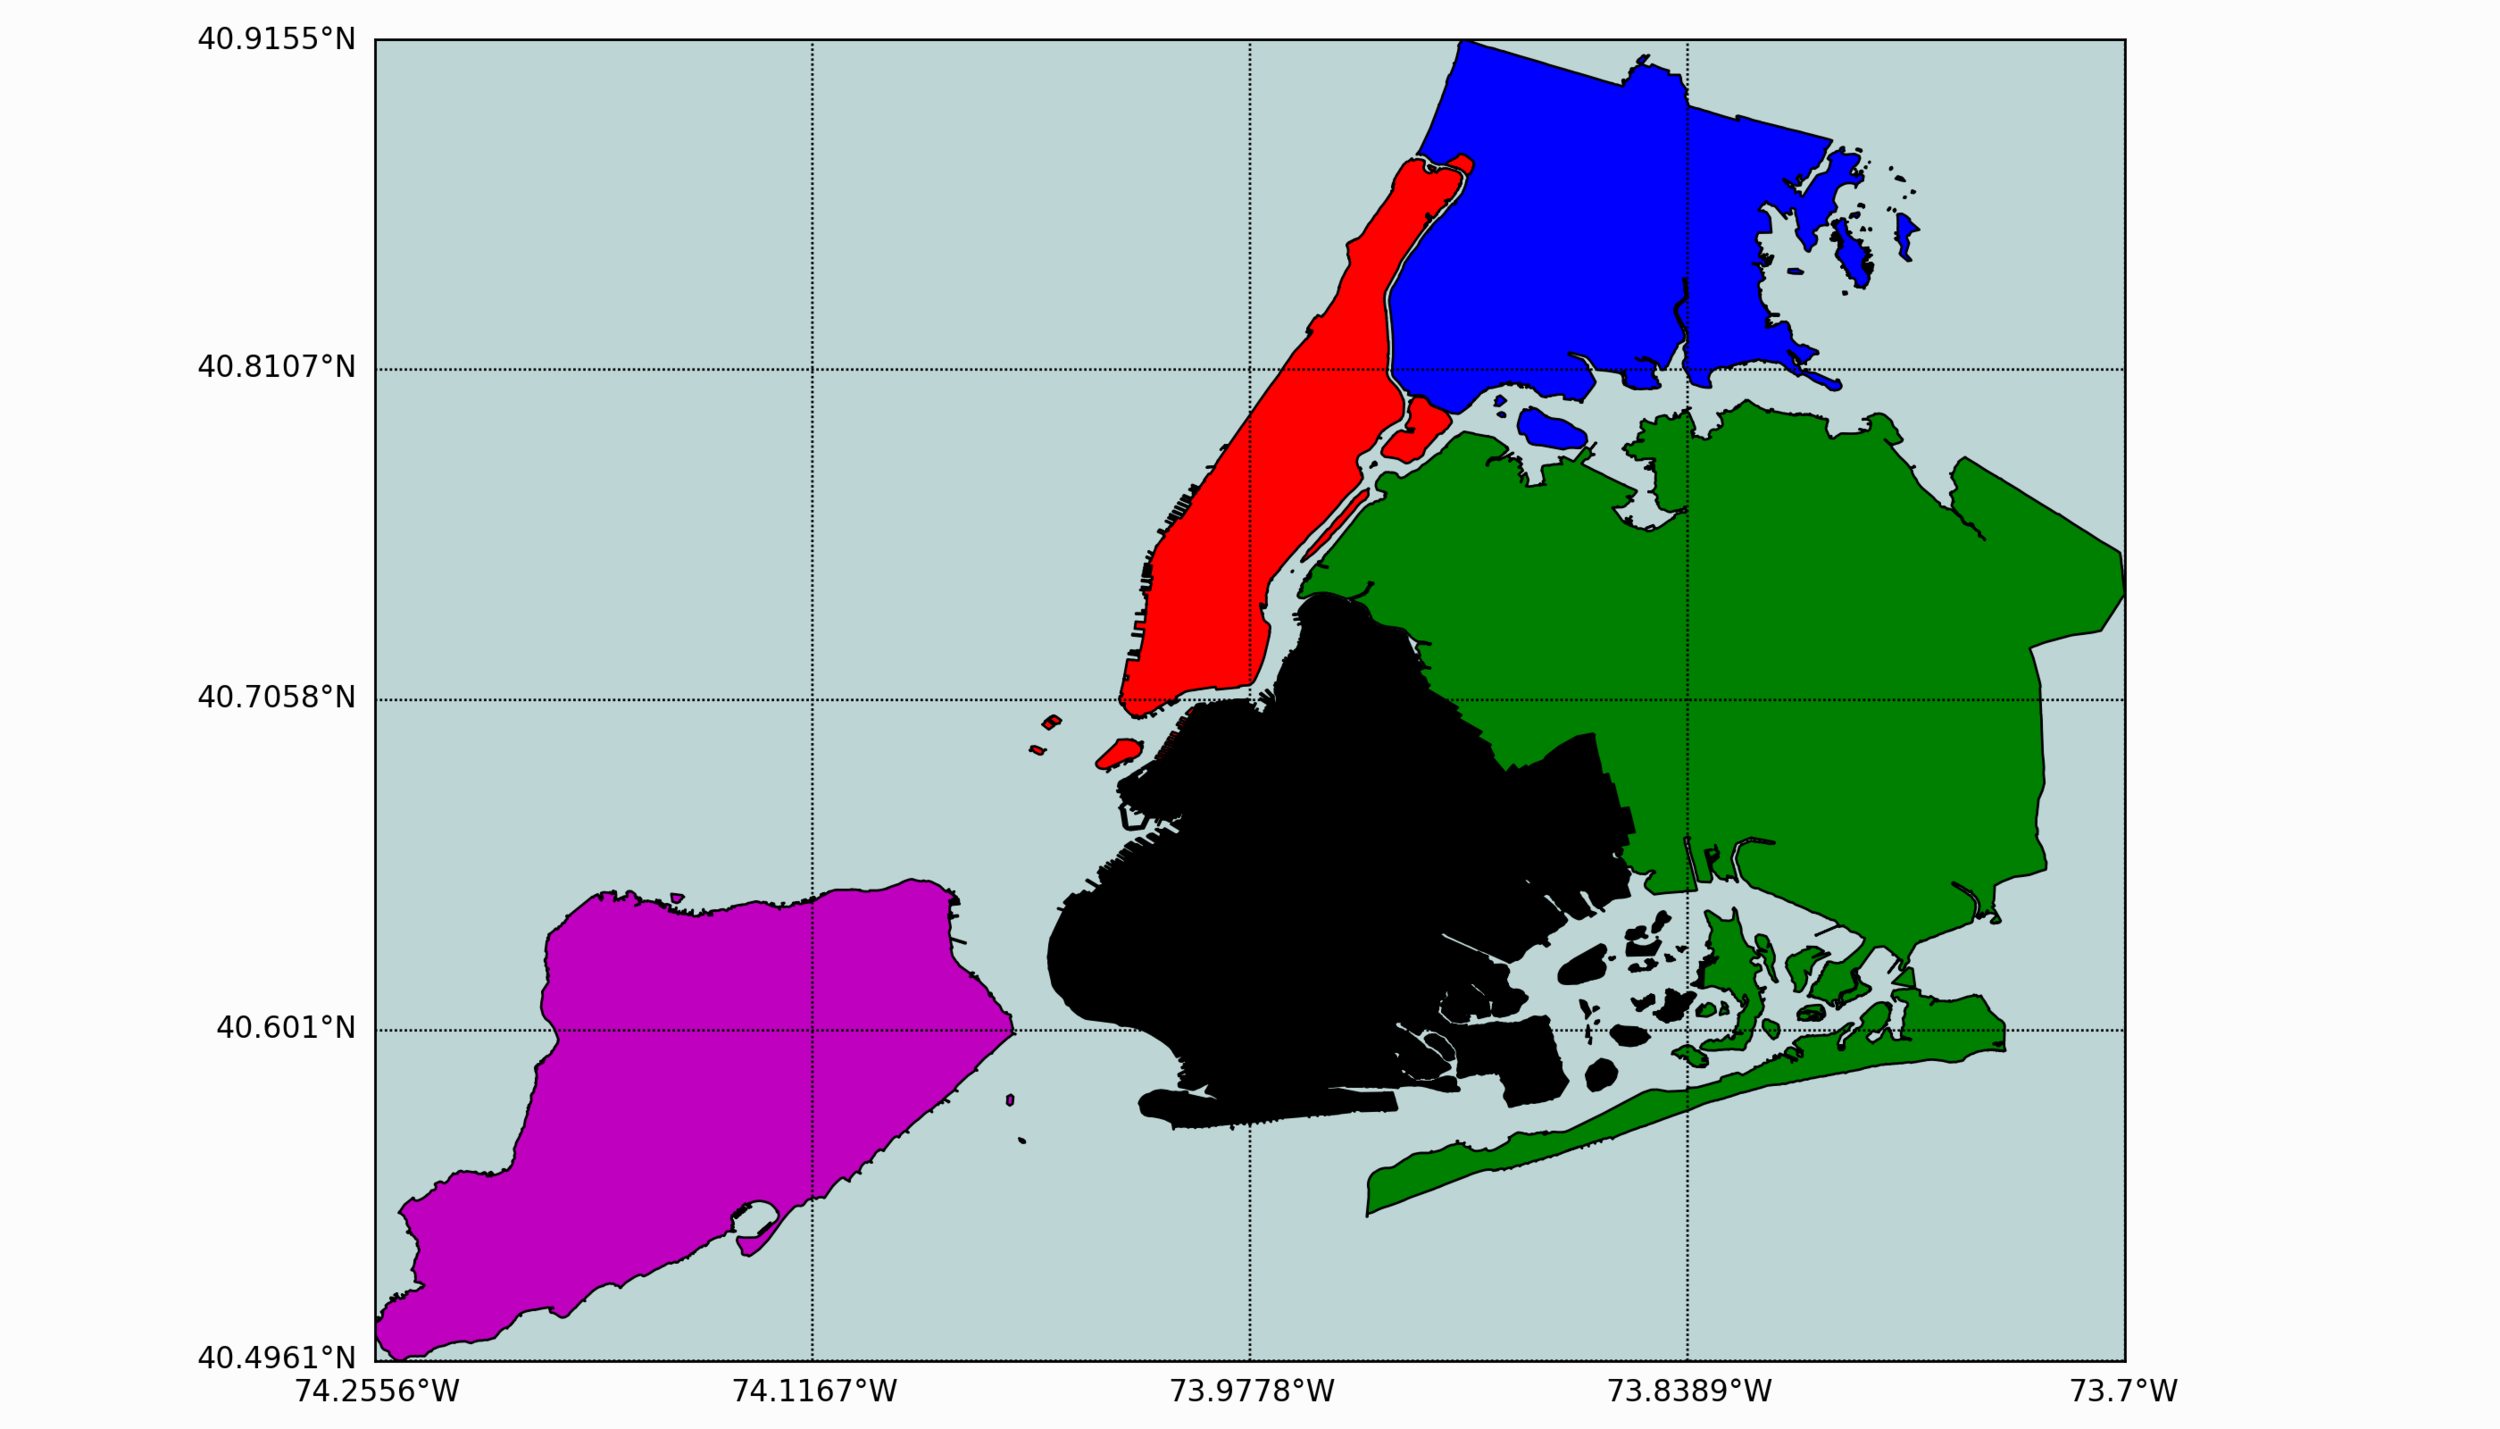 nyc_shapefile_colors.png